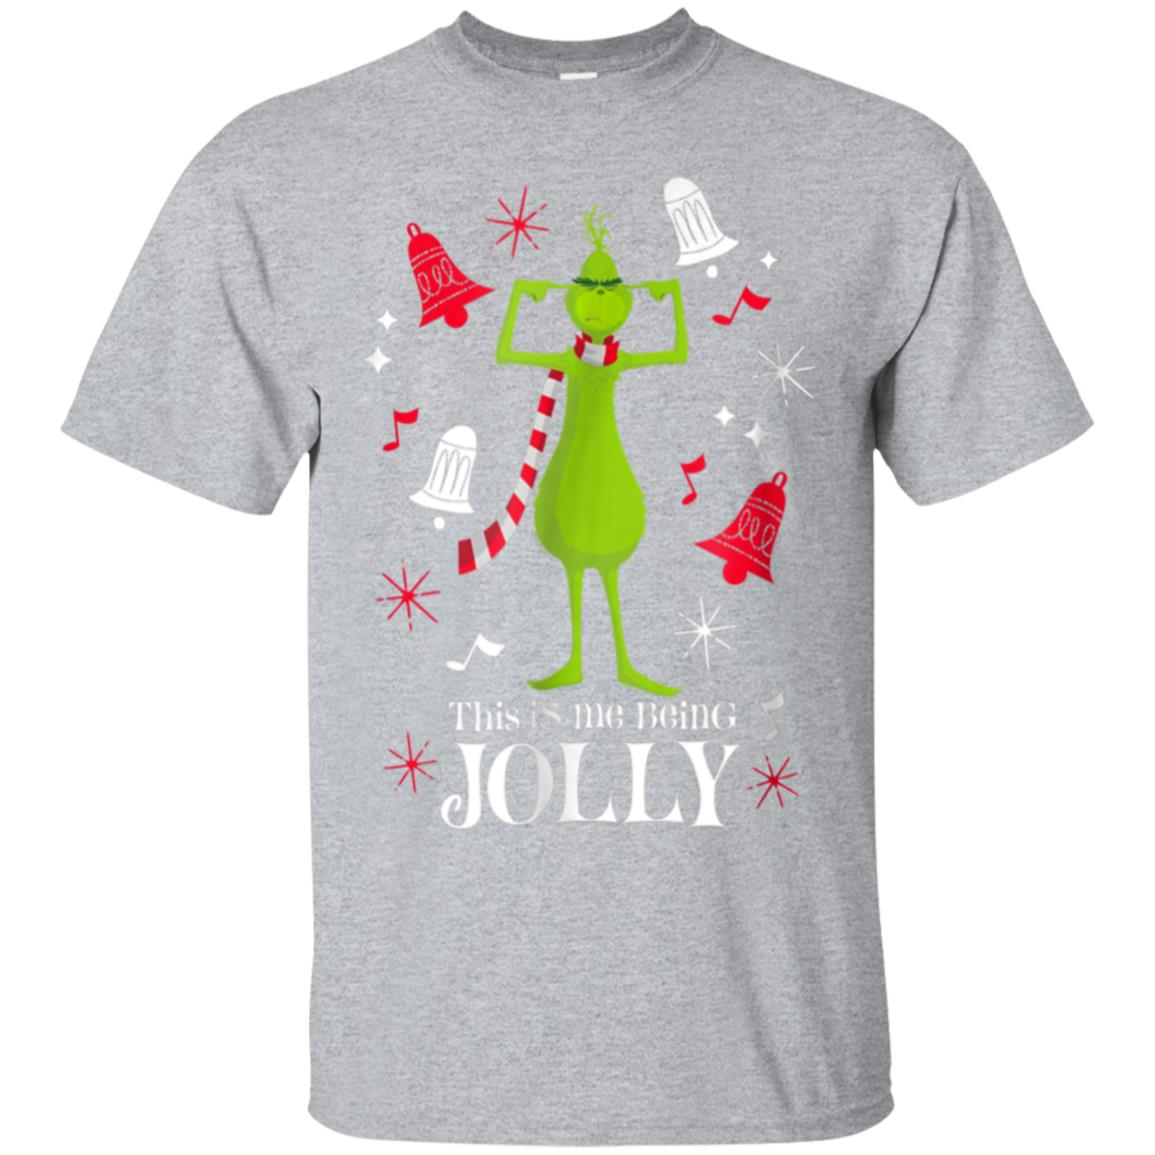 Dr. Seuss The Grinch Being Jolly T-shirt 99promocode